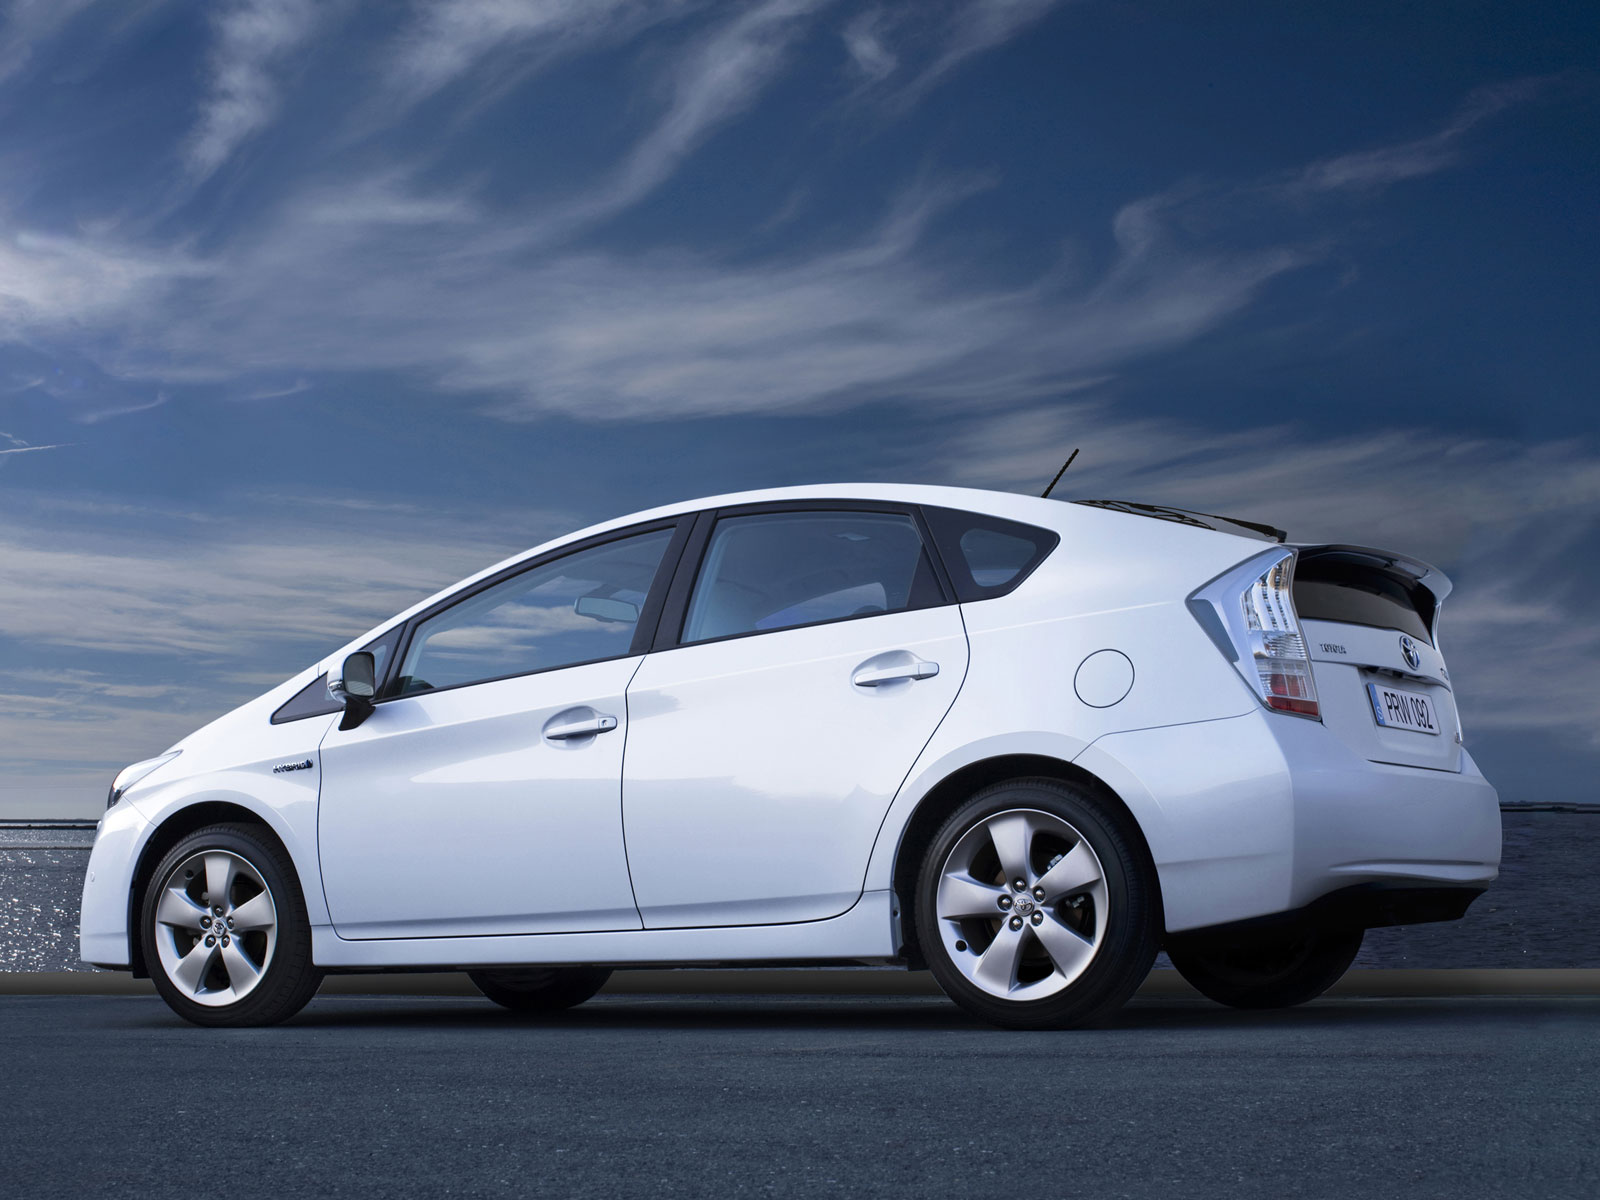 2009 prius 2009 toyota prius hybrid review 2010 prius info autos post. Black Bedroom Furniture Sets. Home Design Ideas